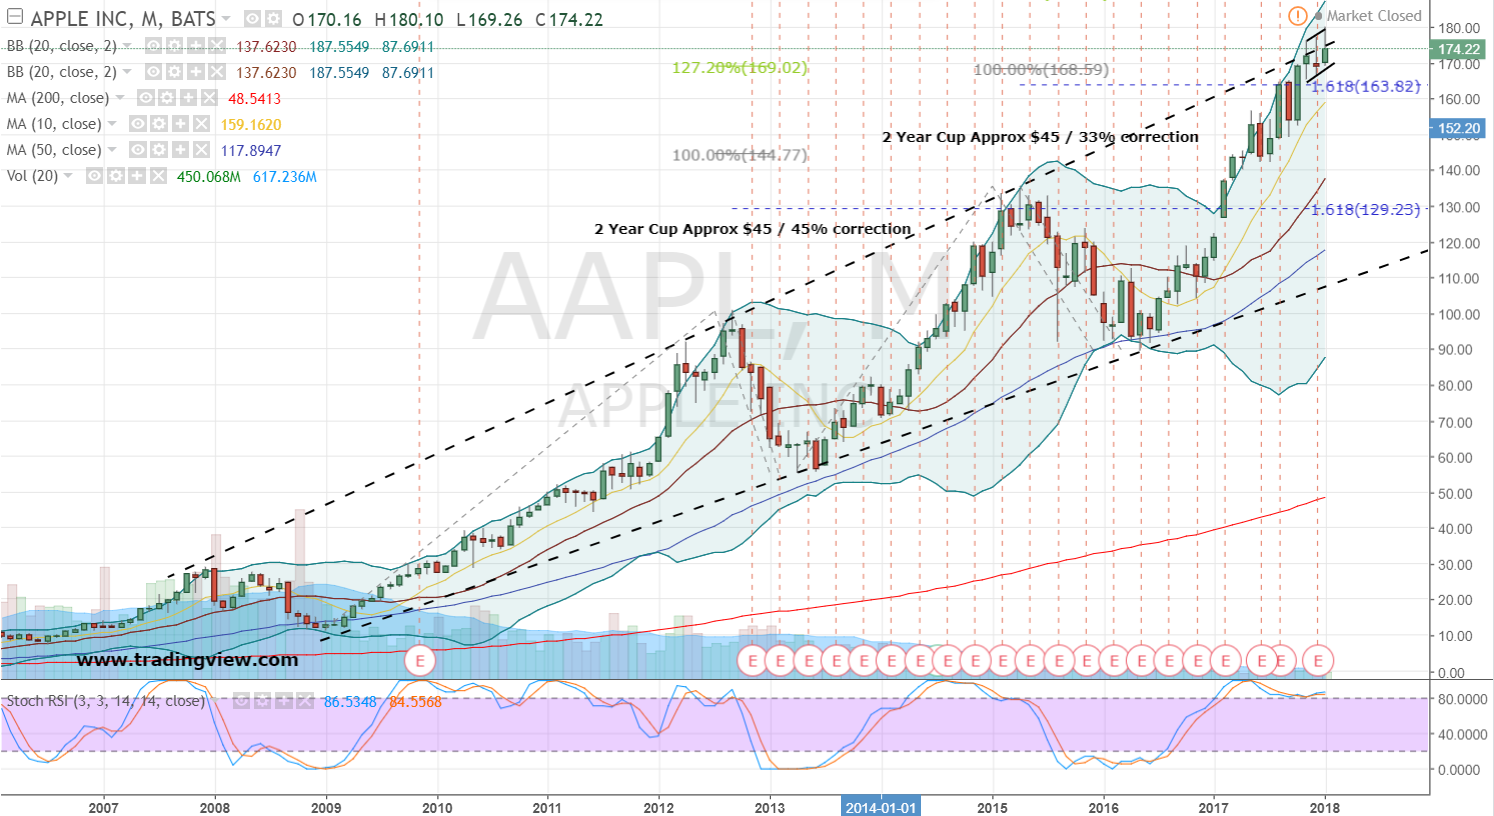 Apple Inc. (AAPL) Shares Bought by Investment House LLC